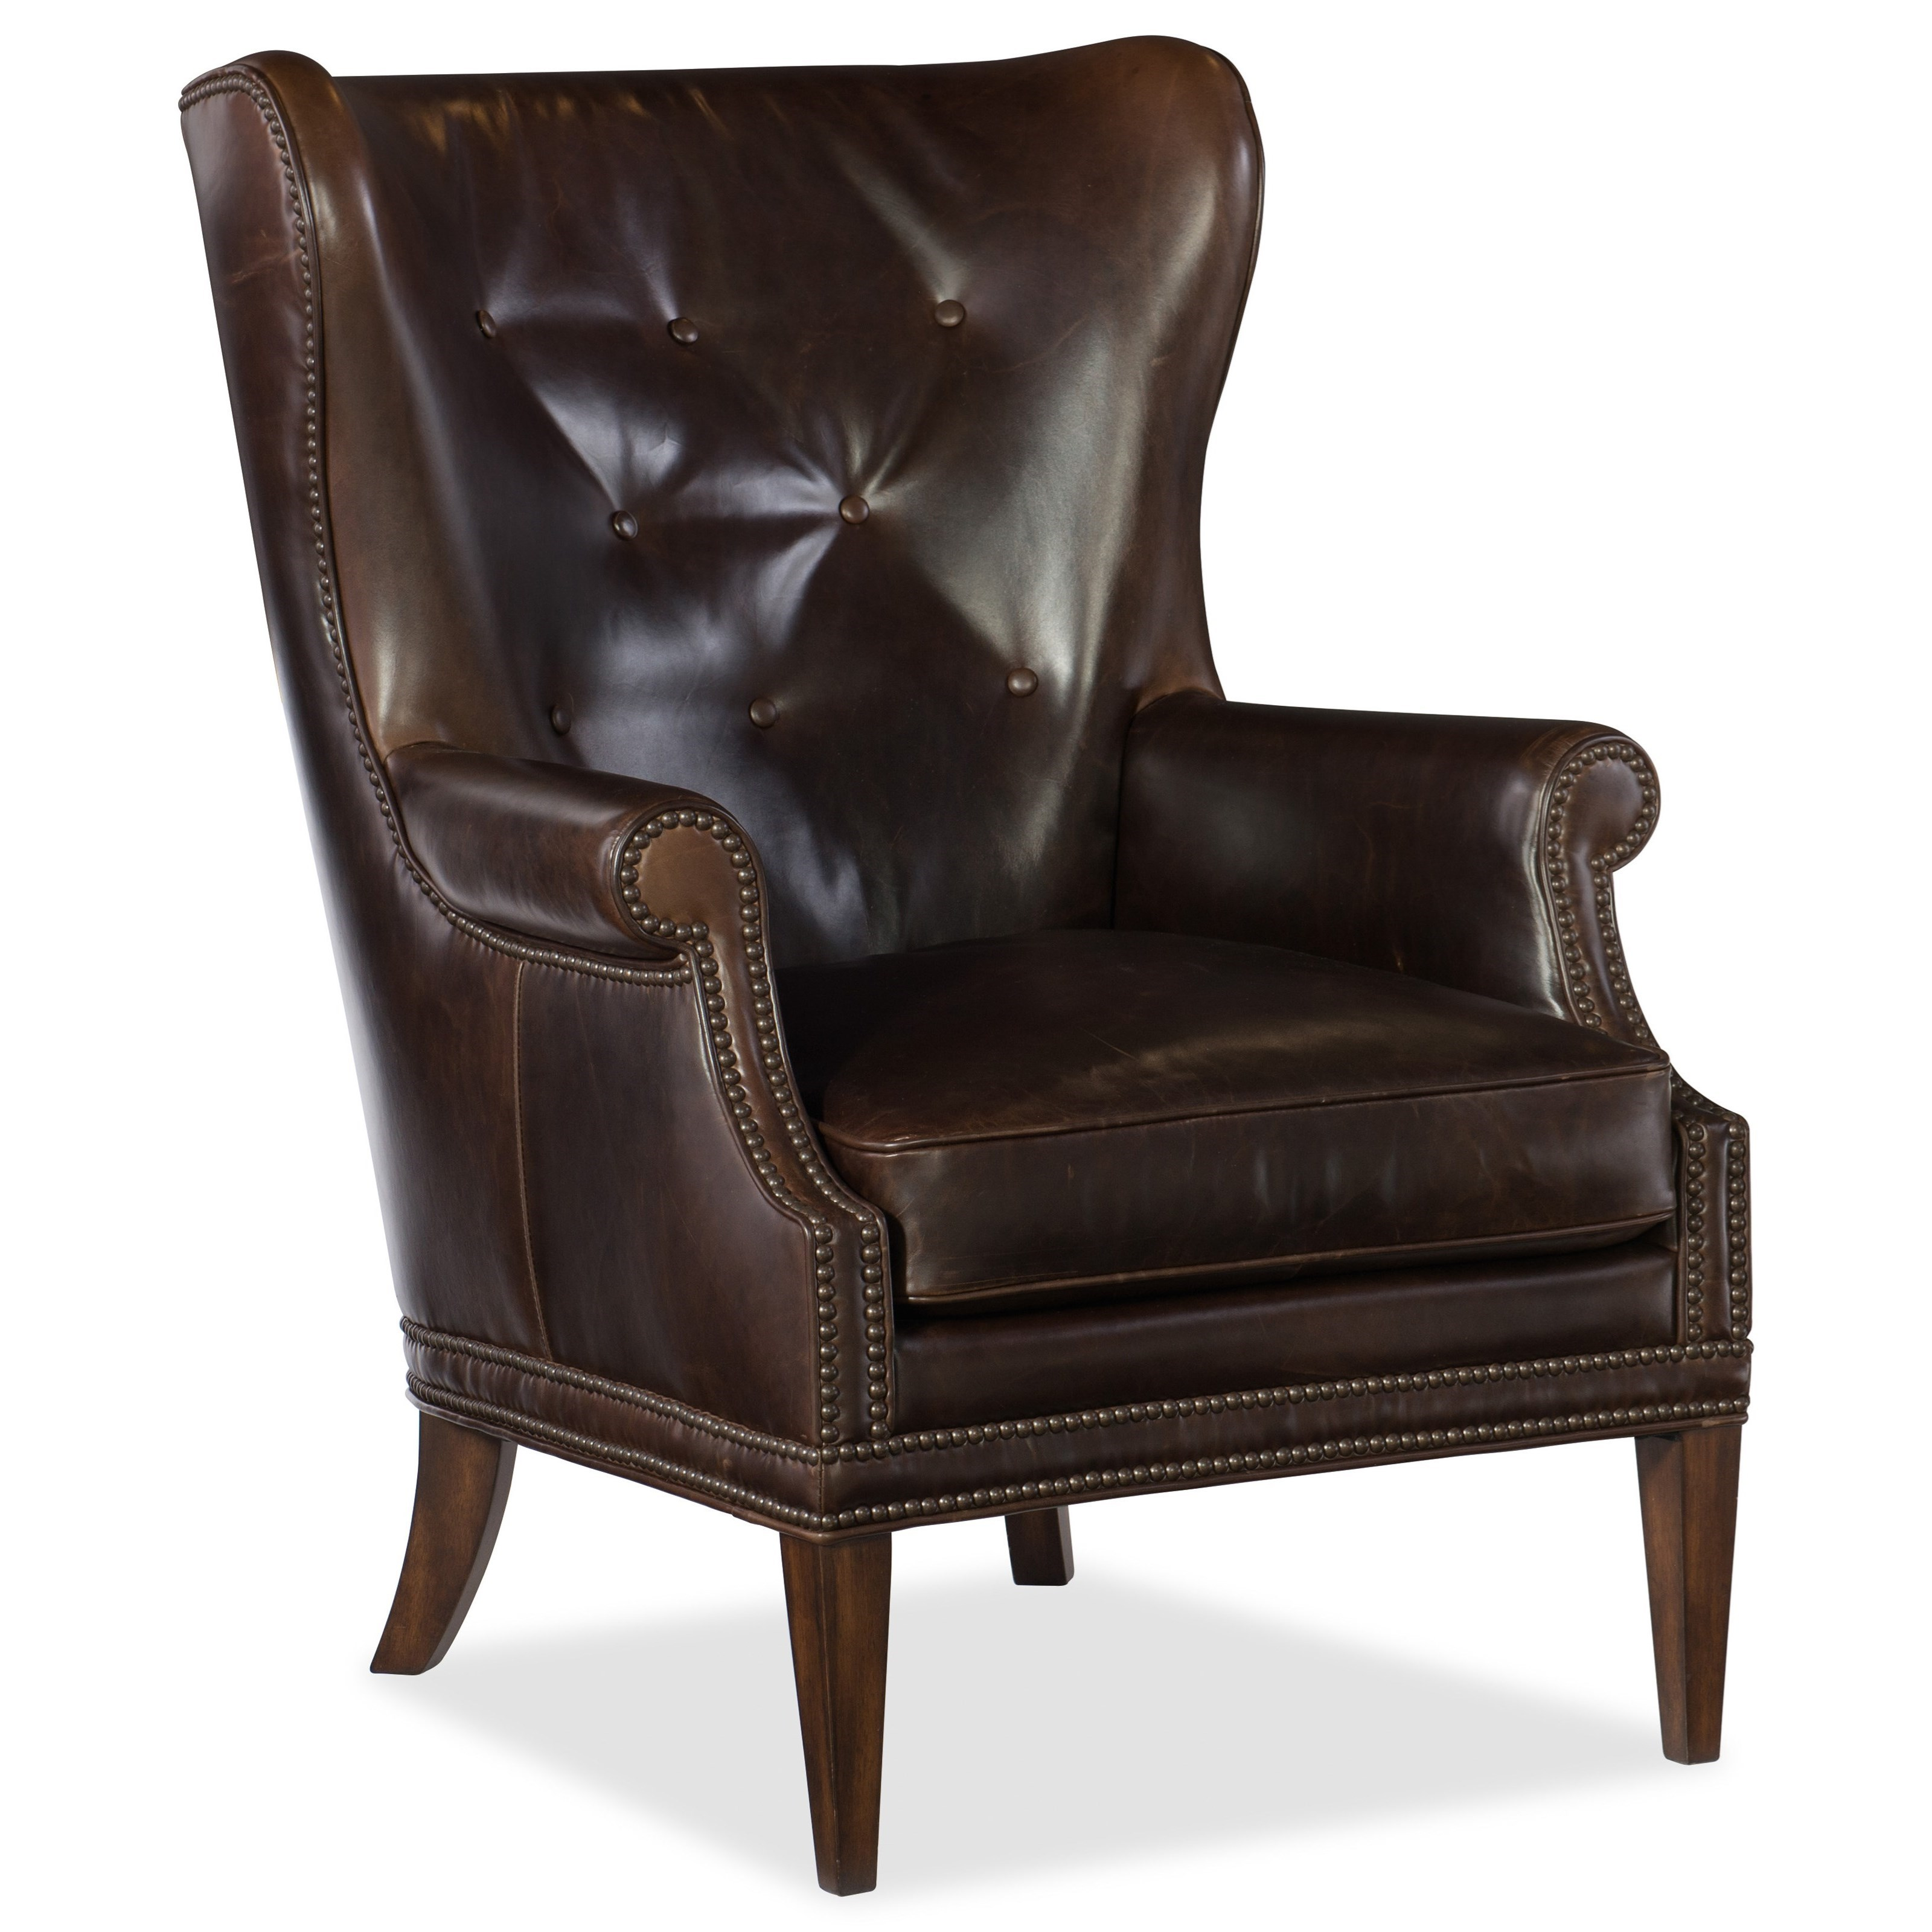 Maya Wing Club Chair by Hooker Furniture at Baer's Furniture